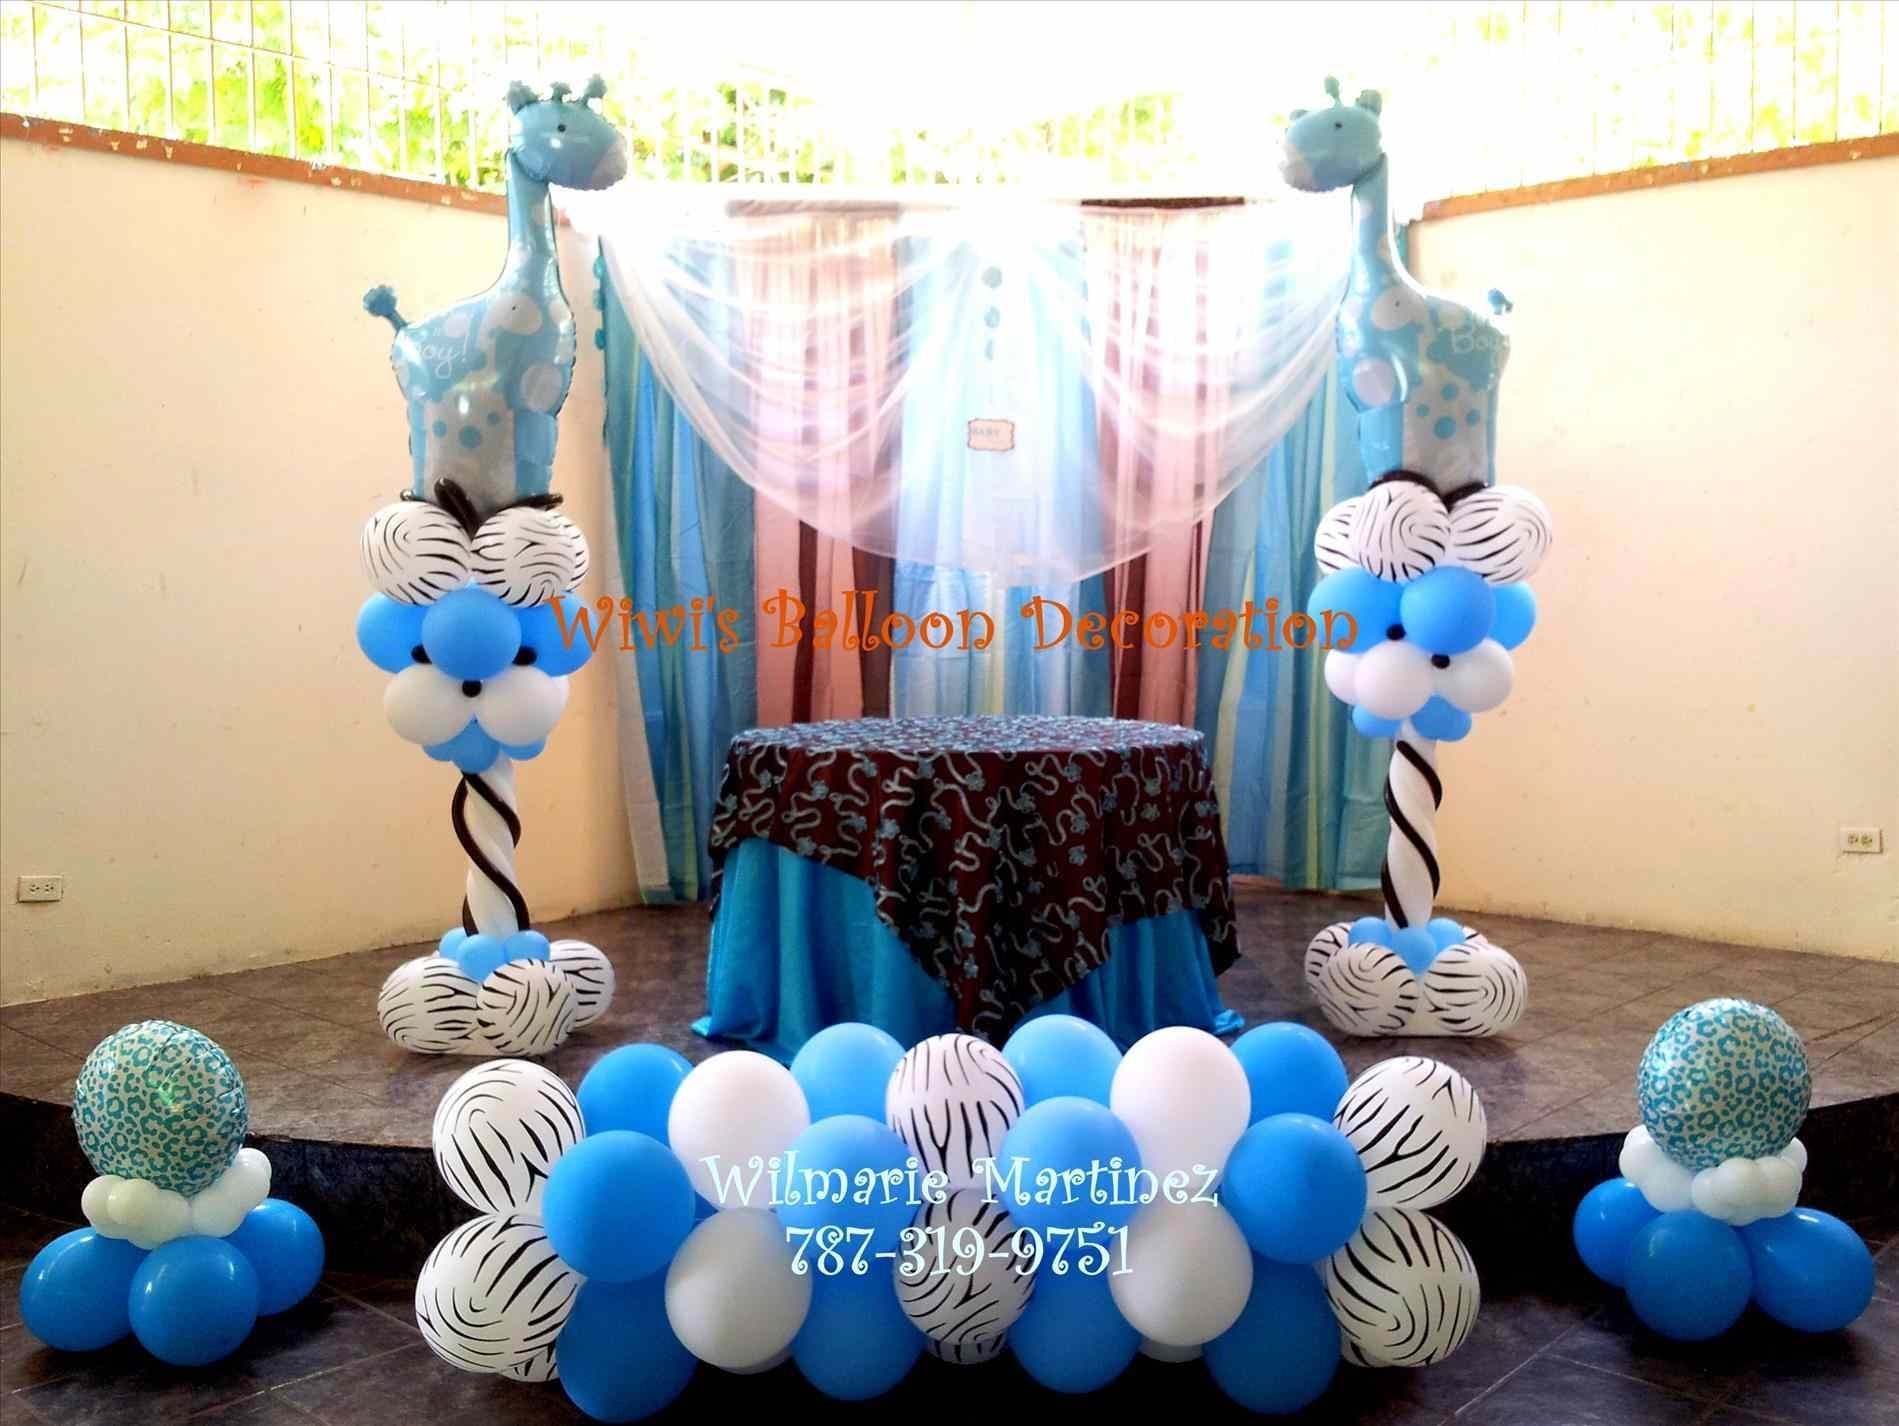 10 Awesome Baby Shower Balloon Decorations Ideas baby shower balloon decorations for a boy ebb onlinecom wedding 2020